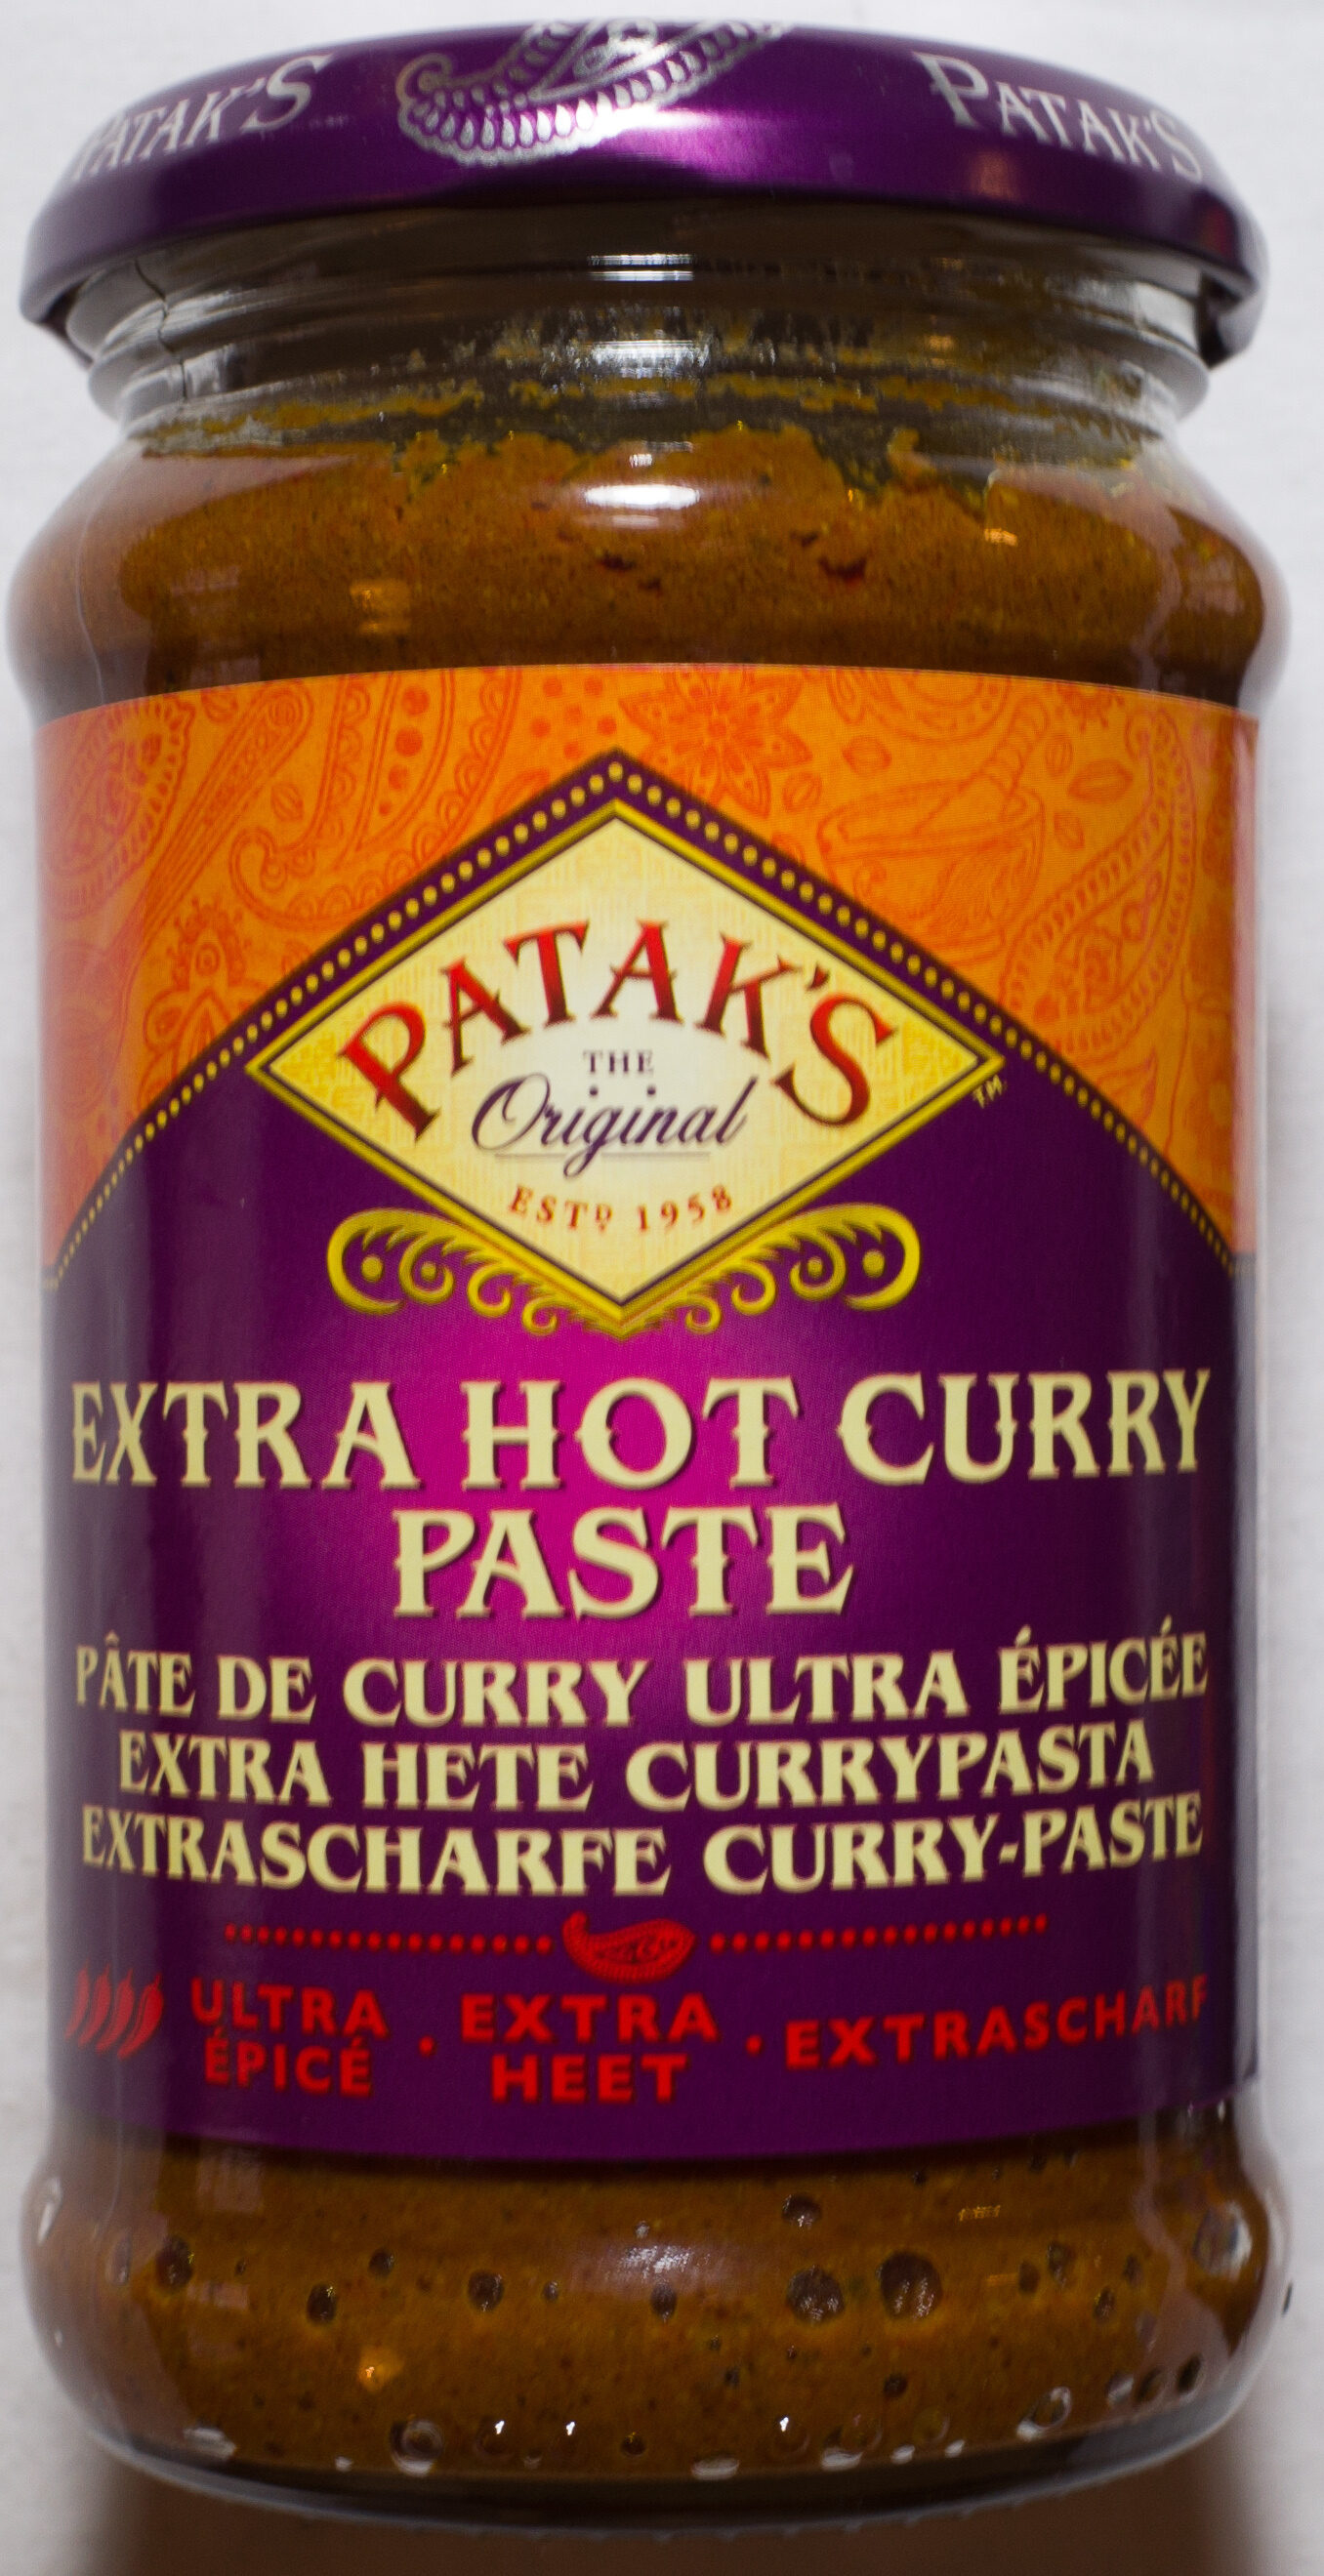 Extra Hot Curry Paste - Product